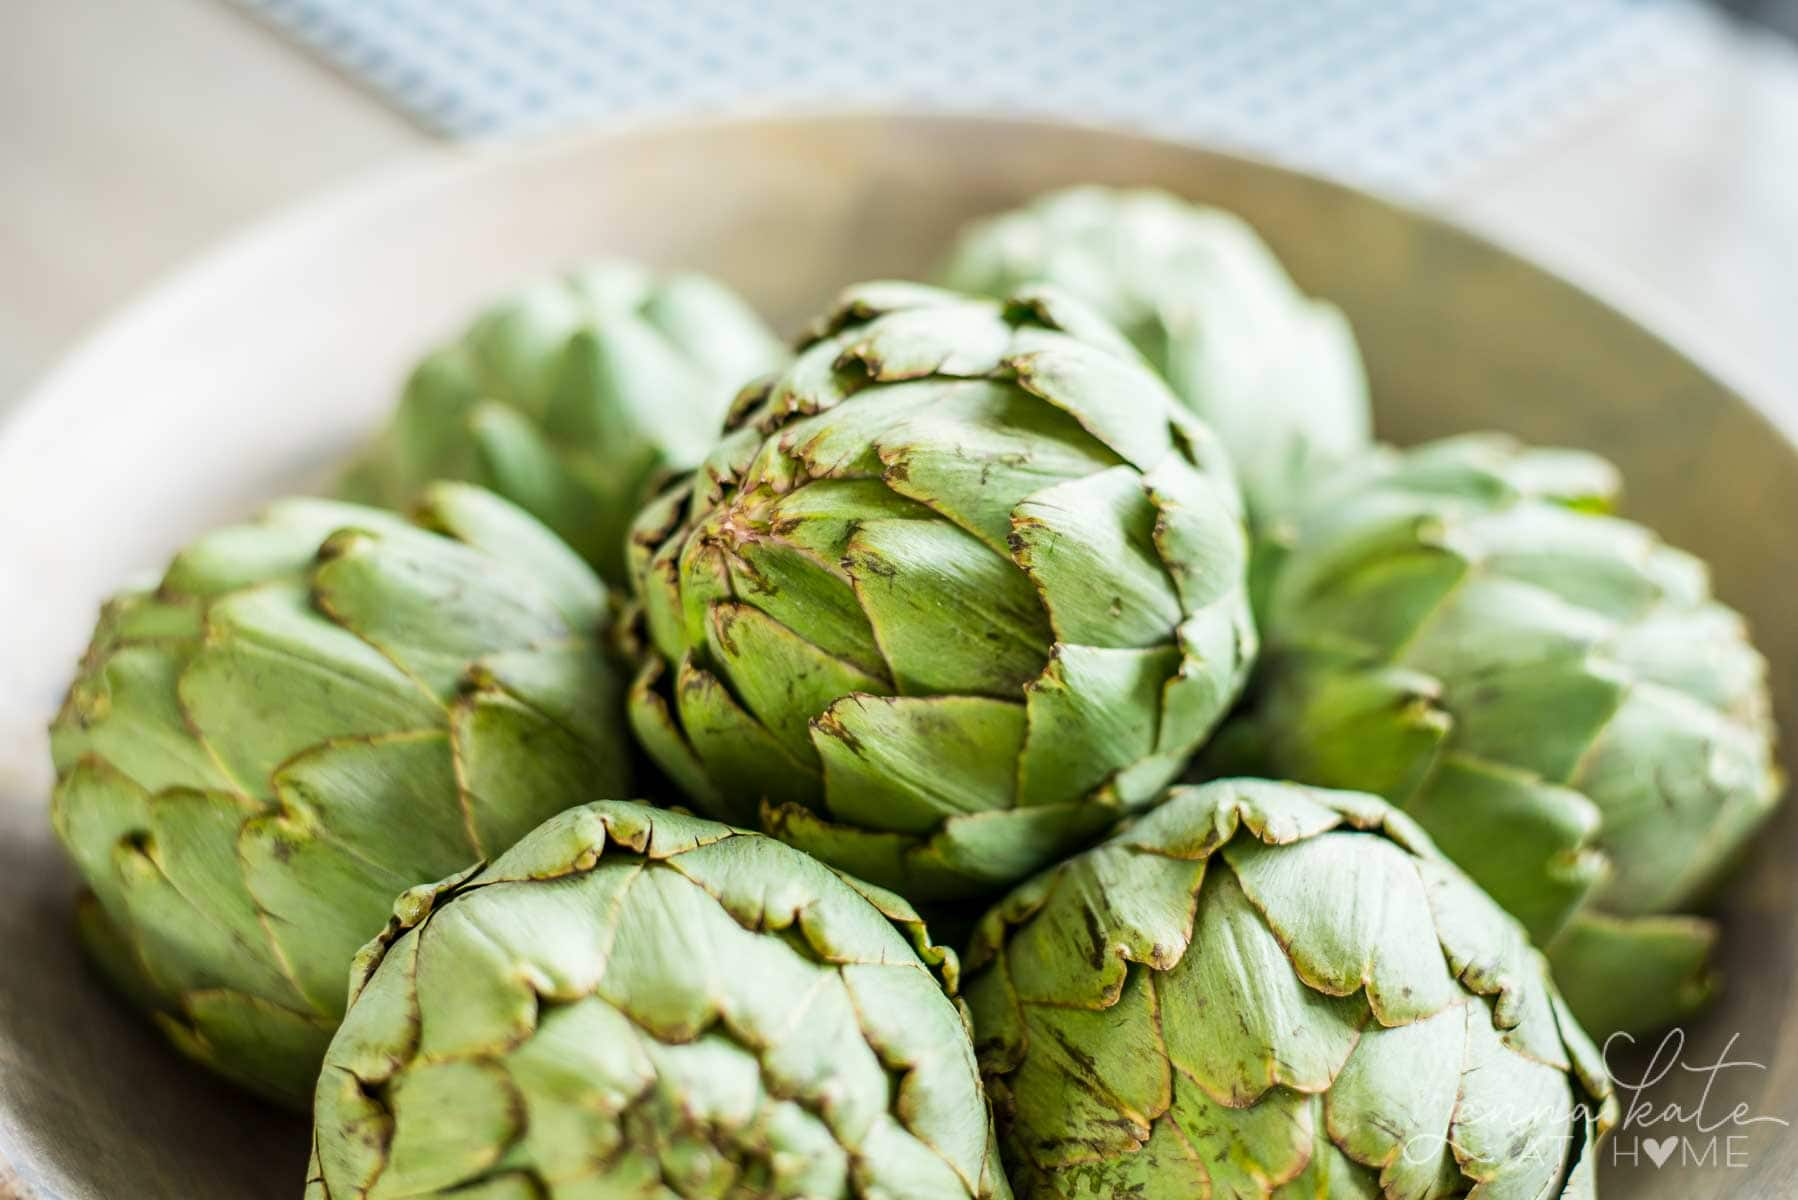 A wooden bowl filled with artichokes